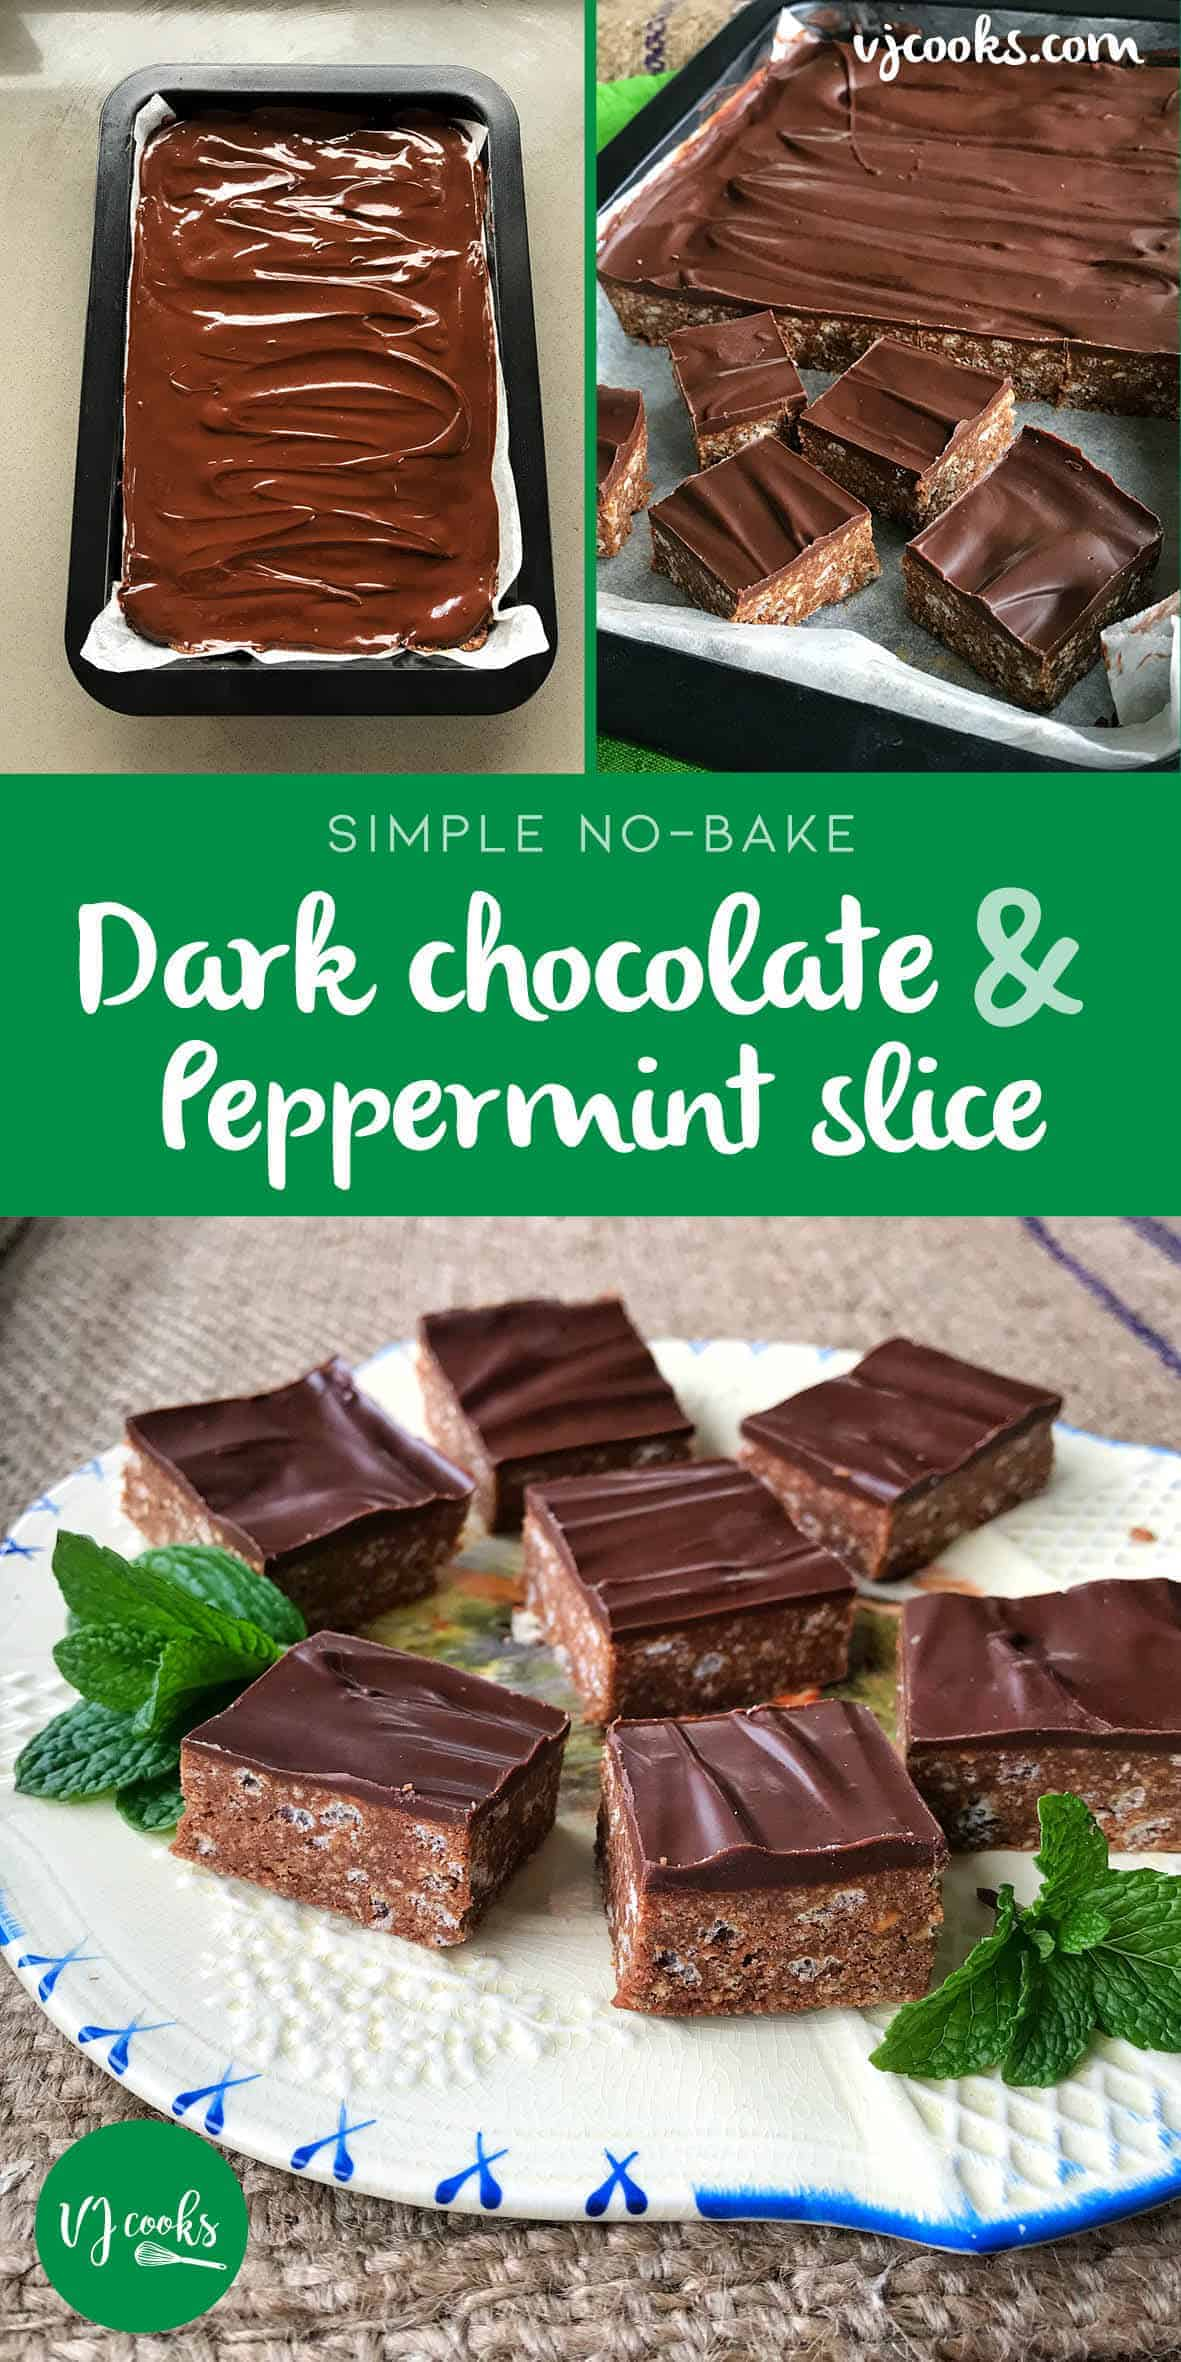 Delicious no-bake dark chocolate peppermint slice, easy recipe from VJ cooks